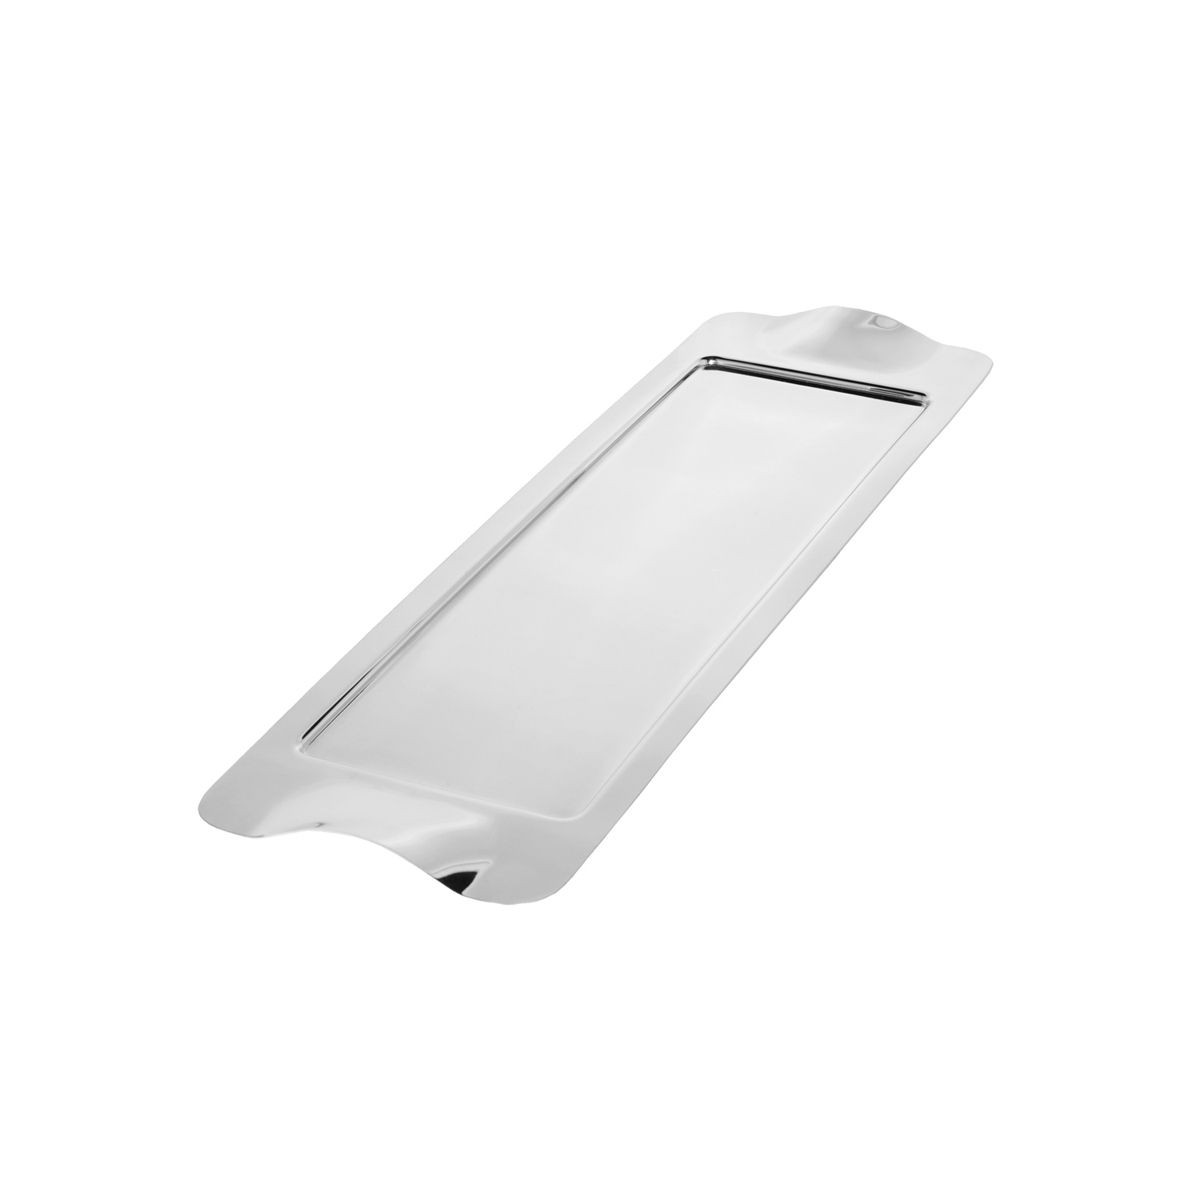 Service Ideas SM-41 SteelForme Stainless Steel Rectangle Tray, 20& x 6&